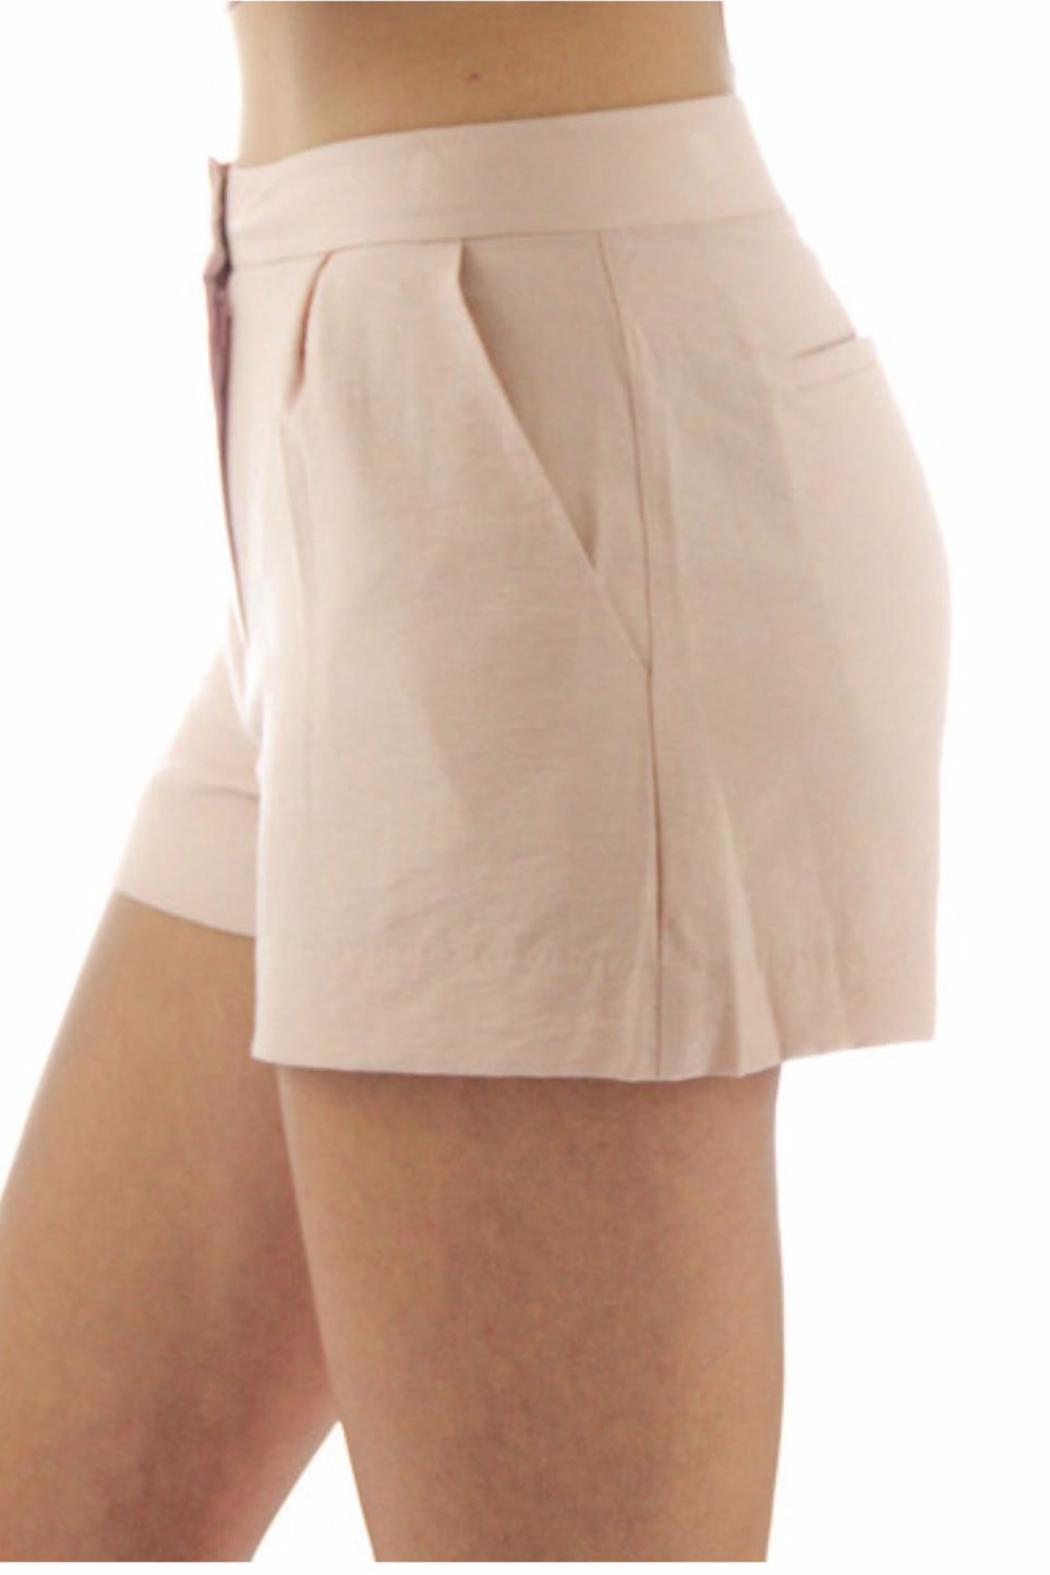 BCBGeneration Pink Tailored Shorts - Side Cropped Image